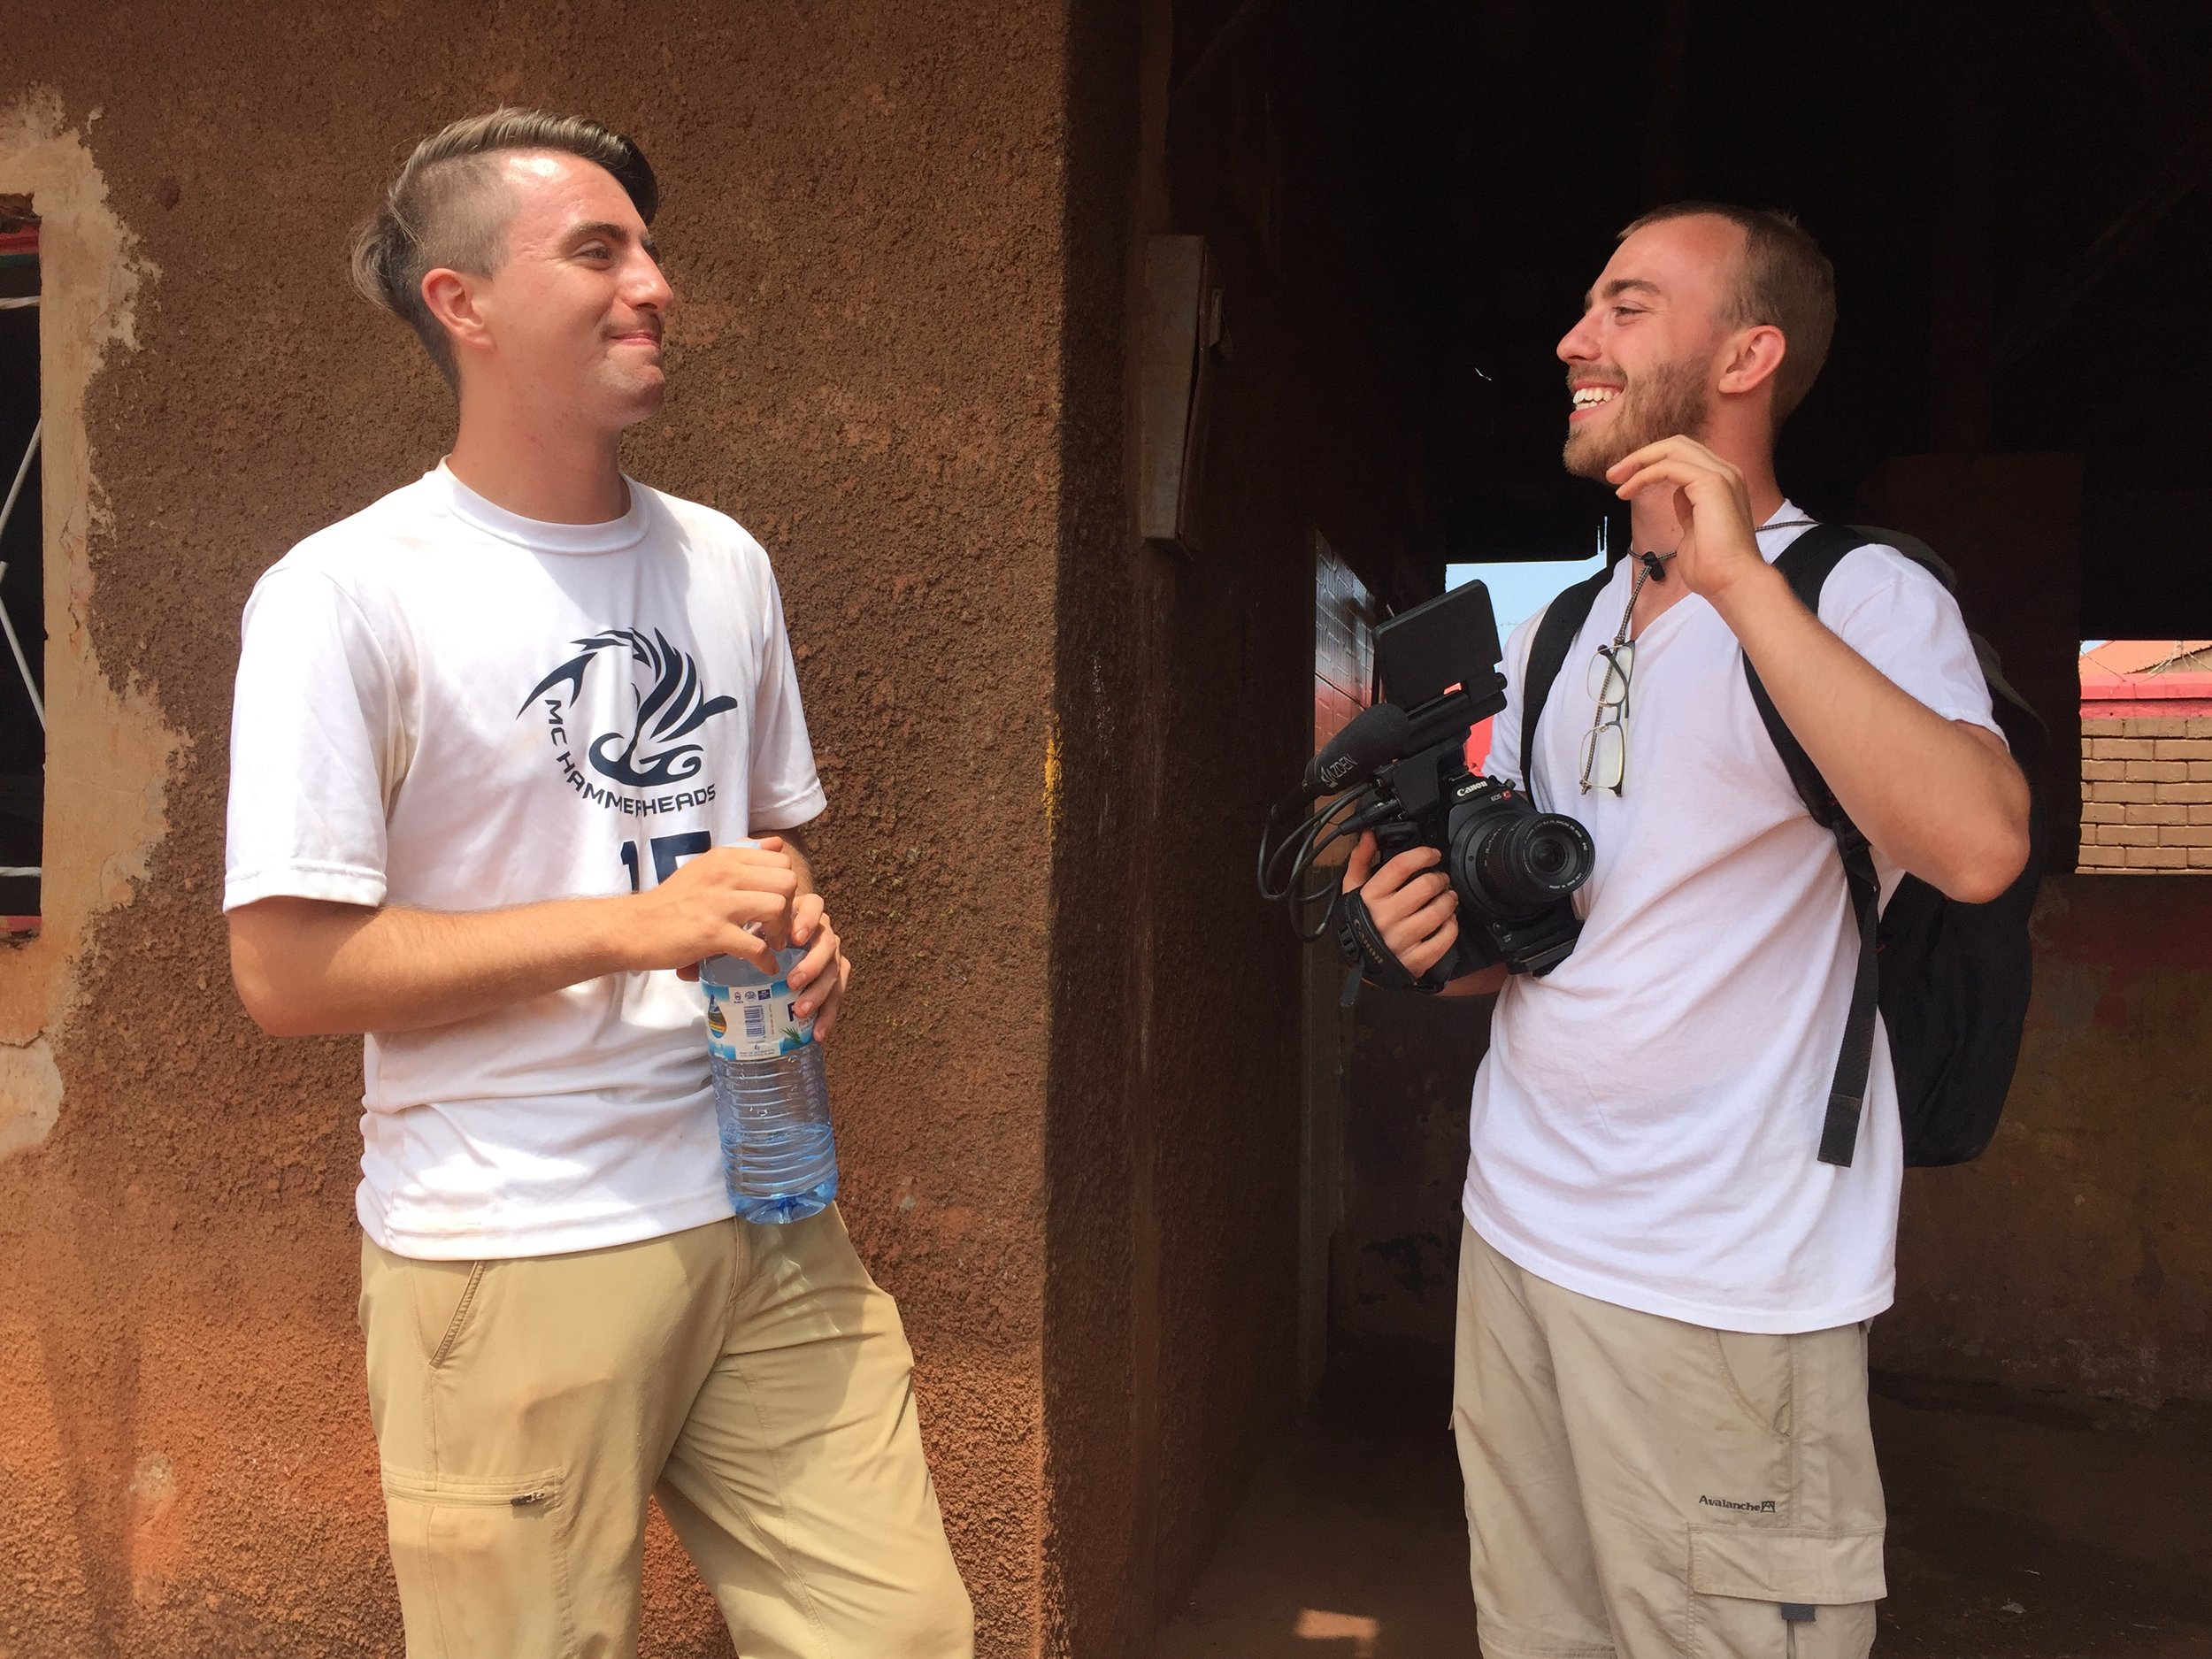 Chris Martin (left) & Jesse Manning (right) collaborating in Masese, Uganda